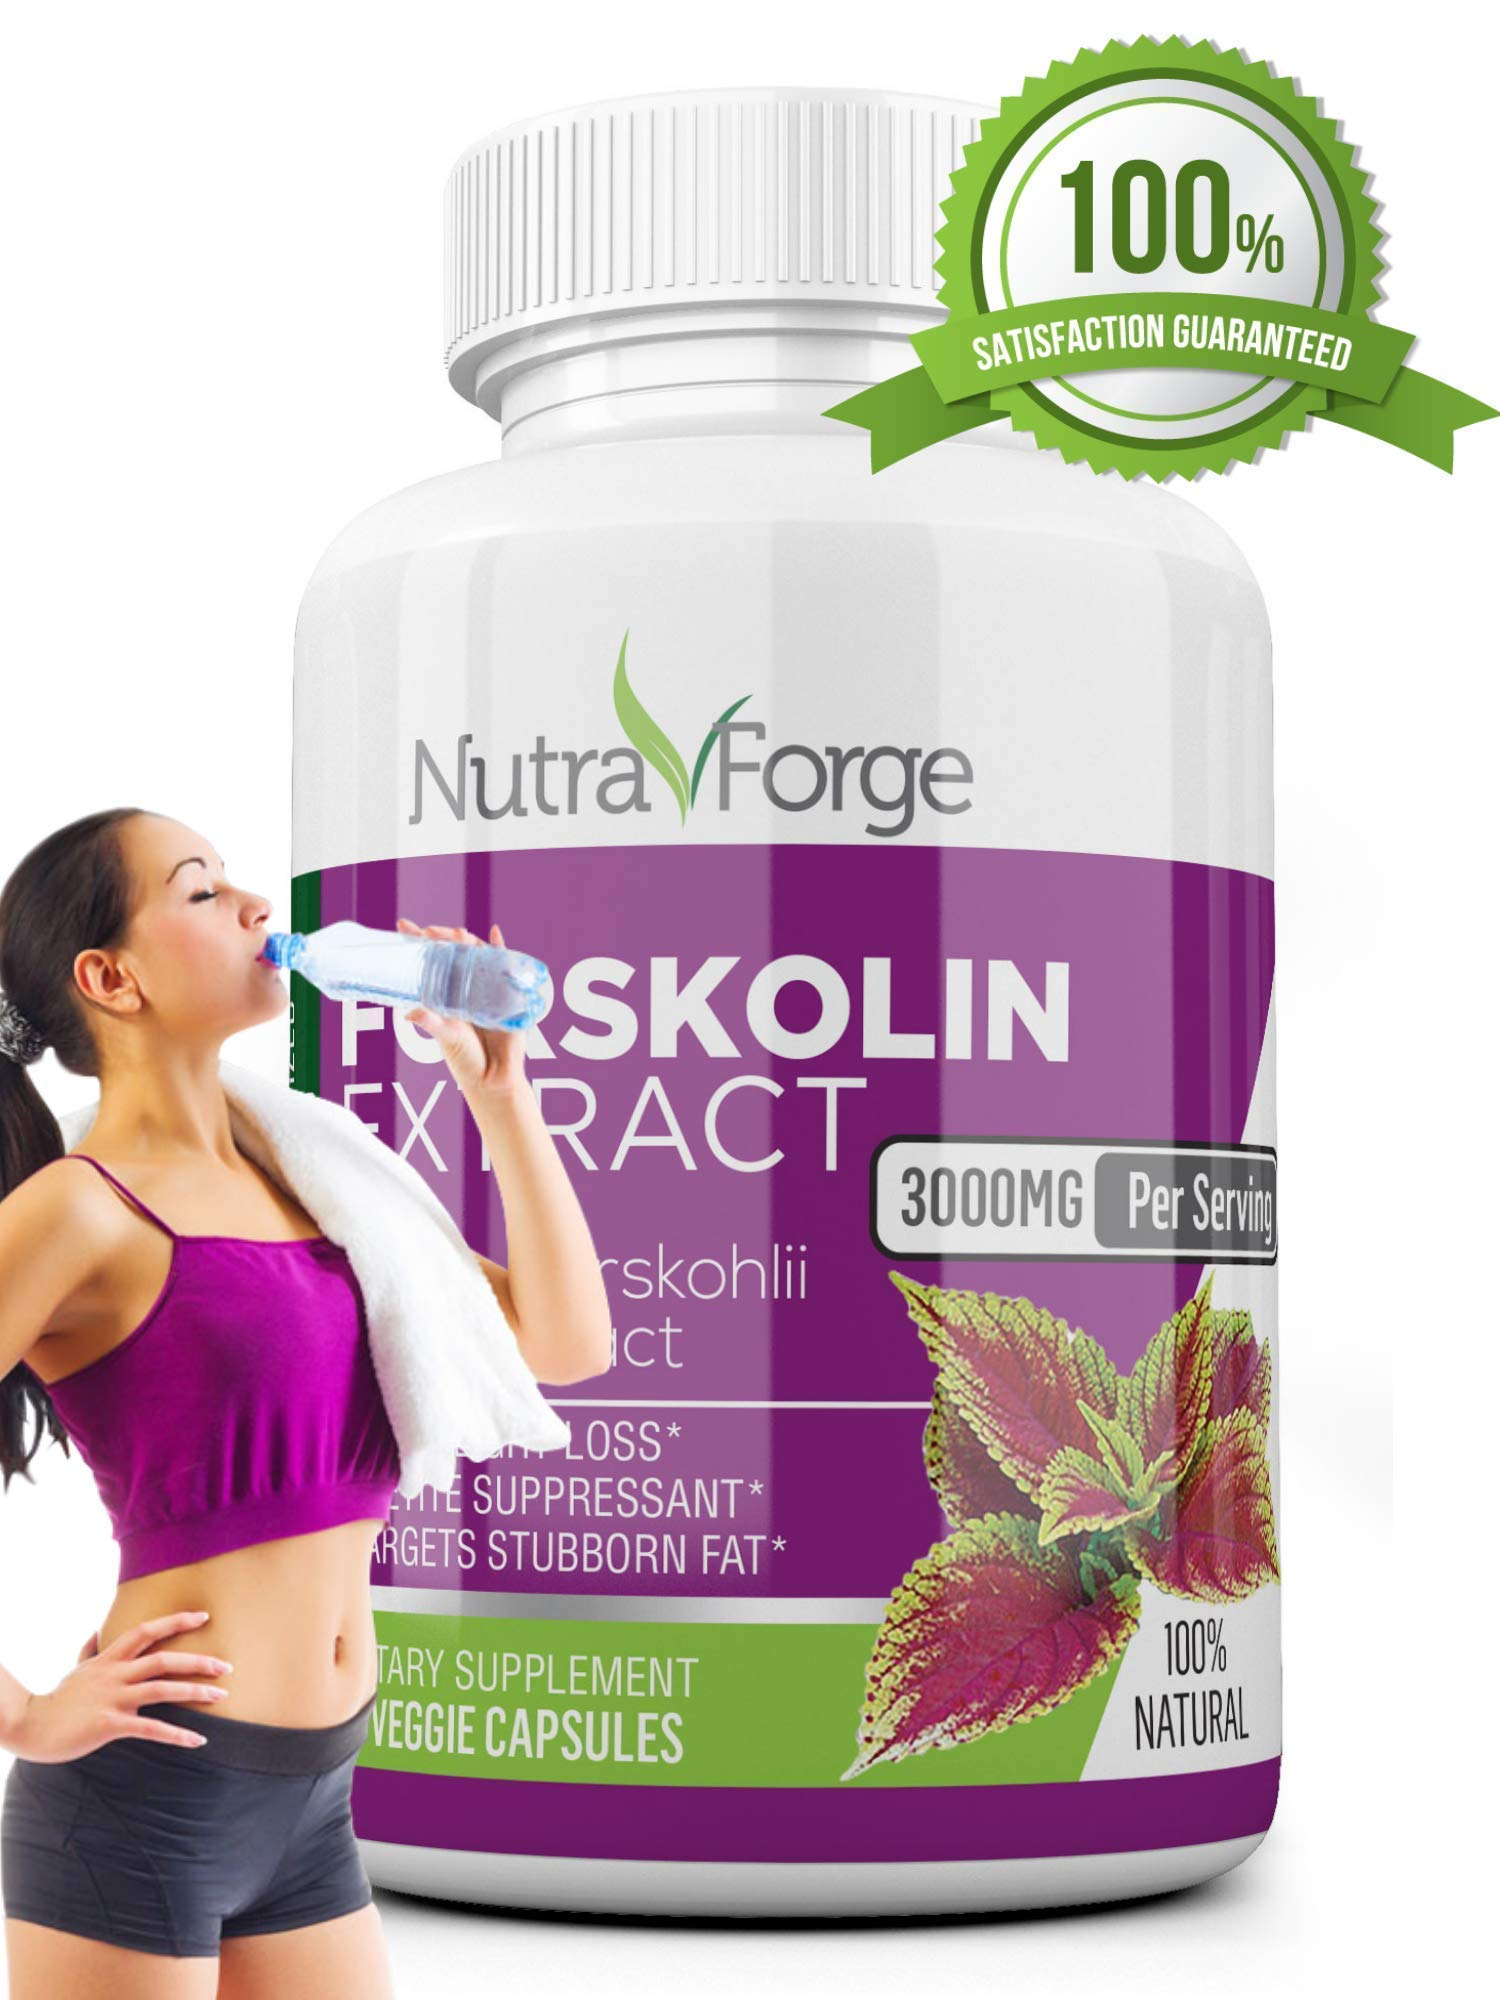 Pure Forskolin 3000mg Max Strength - Forskolin Extract for Weight Loss - Premium Appetite Suppressant, Metabolism Booster, Carb Blocker & Fat Burner for Men and Women - 3 Pack by Nutra Forge (Image #3)